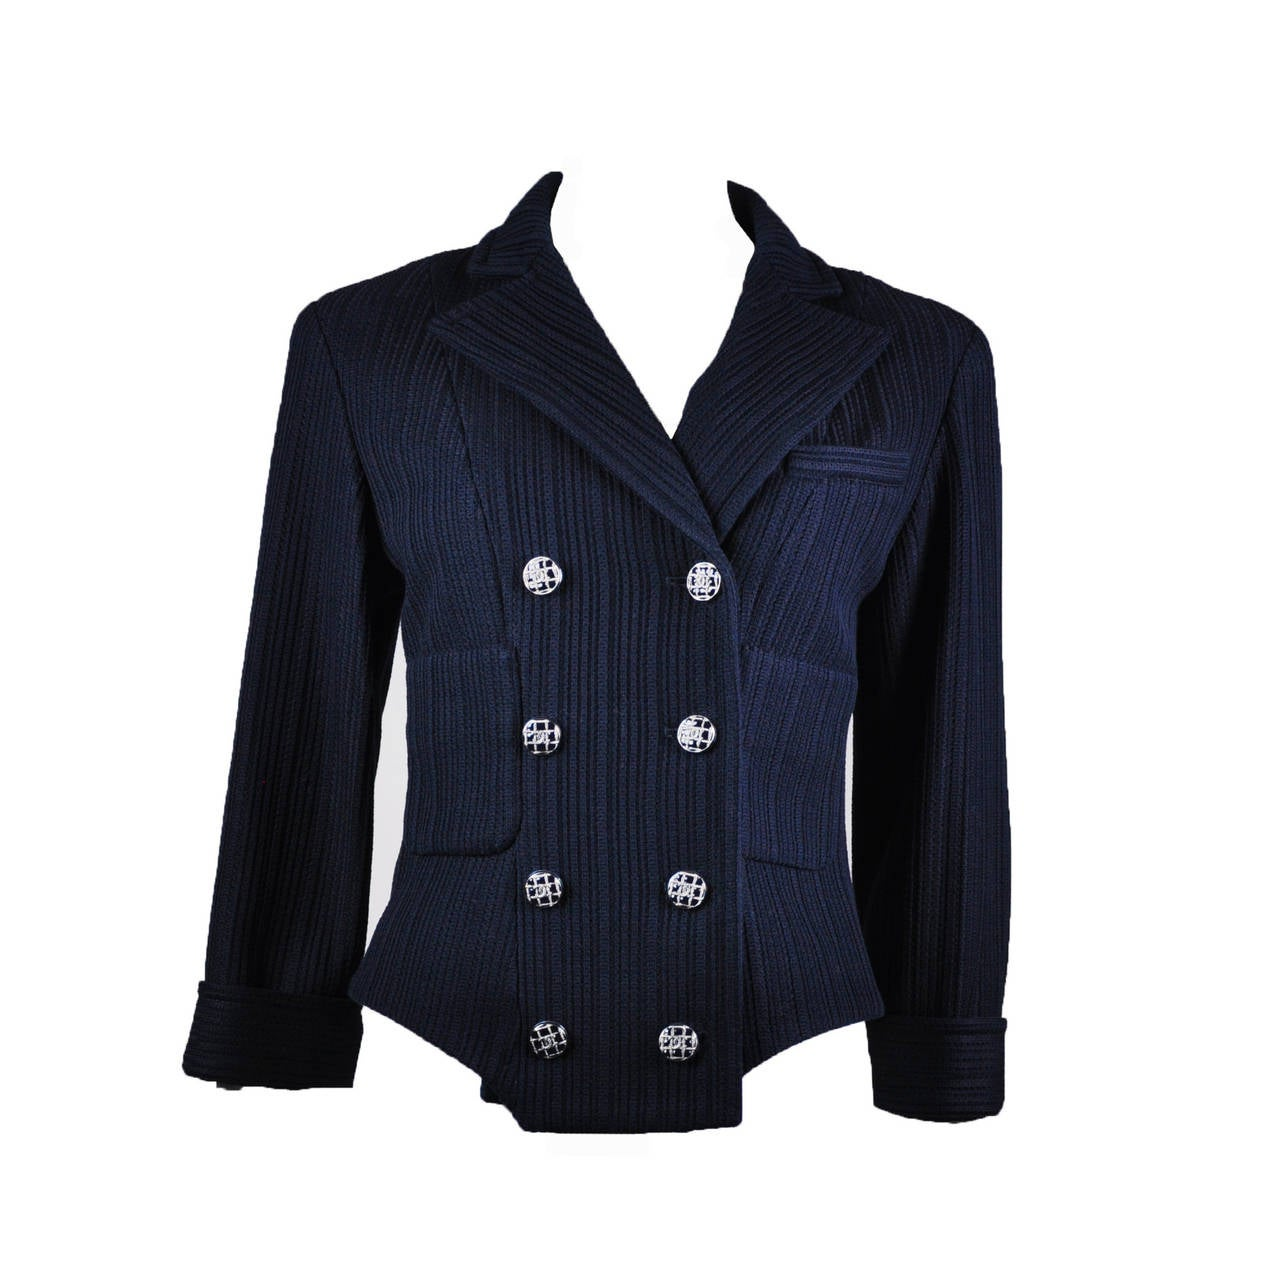 Chanel 2013P Navy Textured Cotton Double Breasted Jacket NWT FR38 1